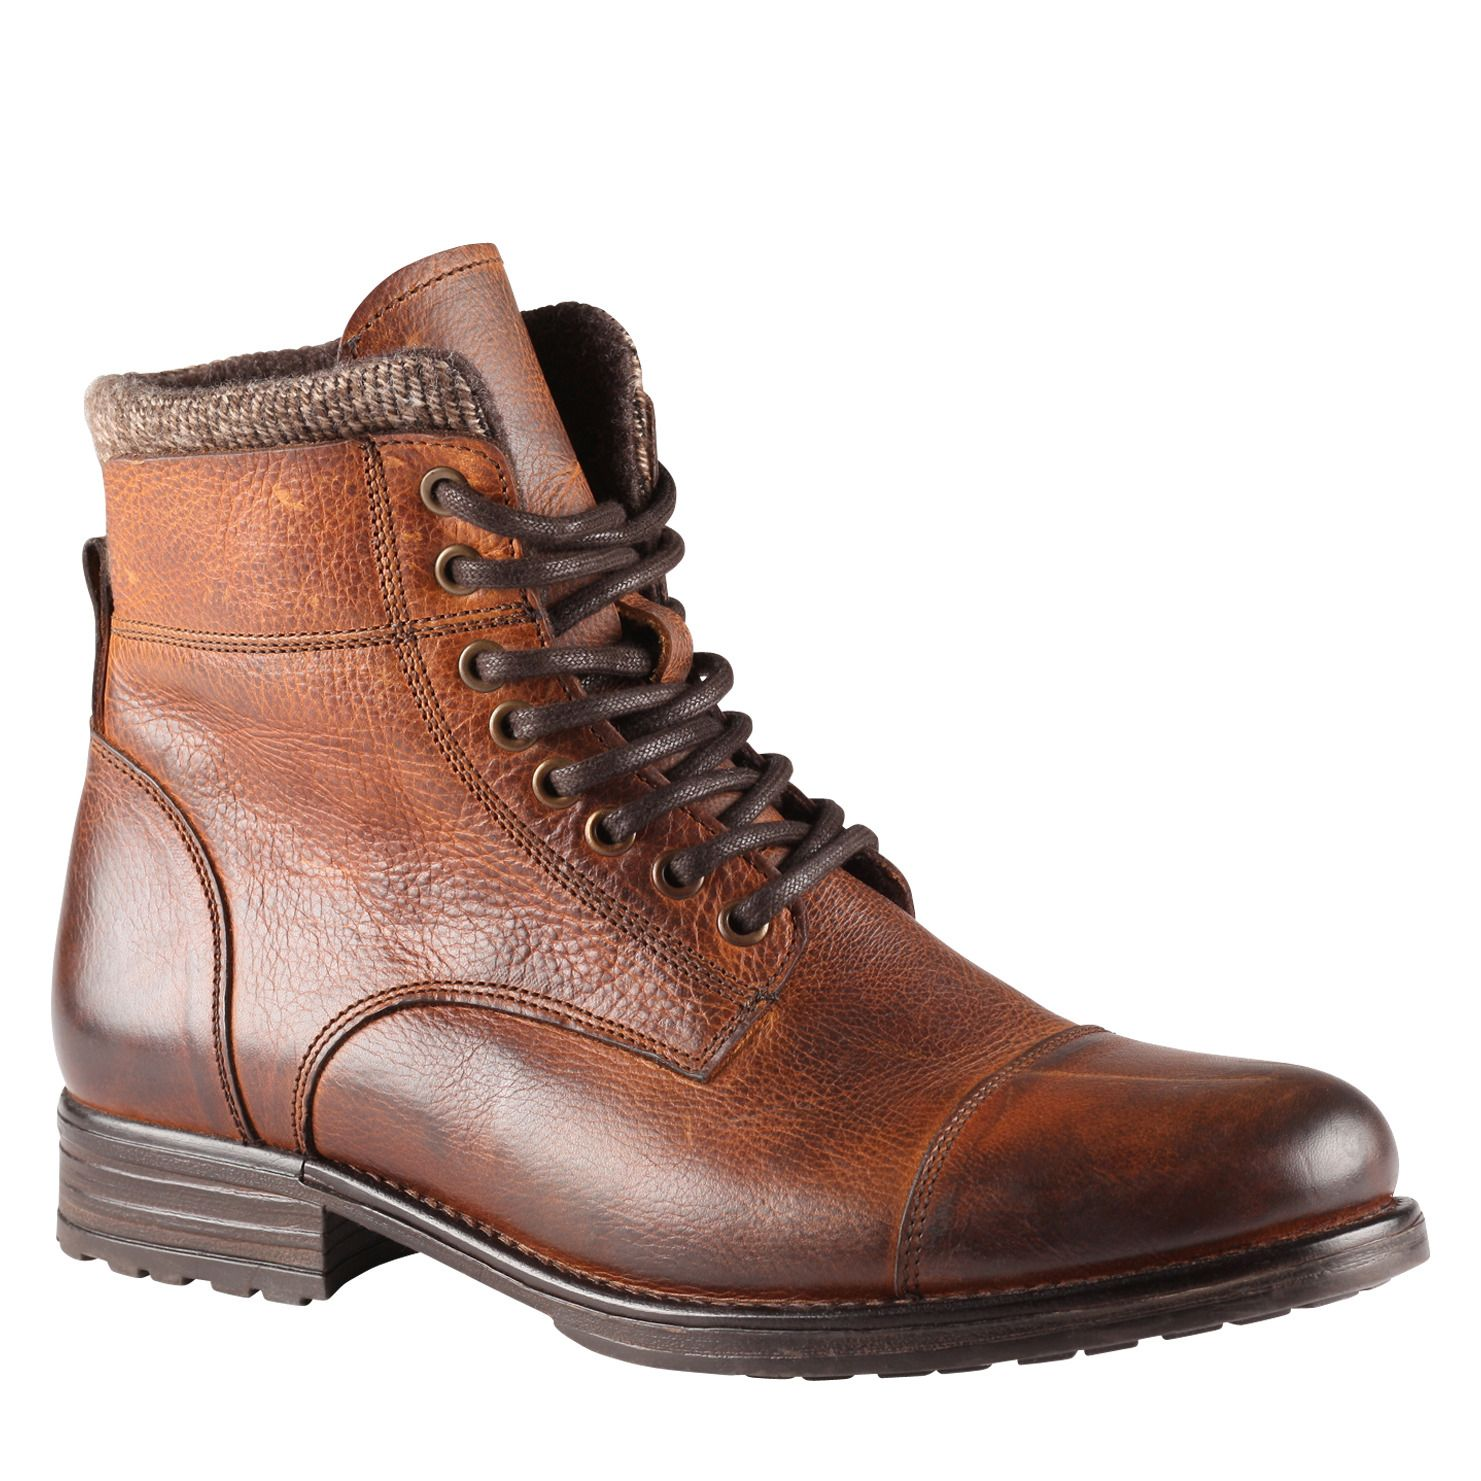 TIMO - this boot is styley and something that works for Montana ...